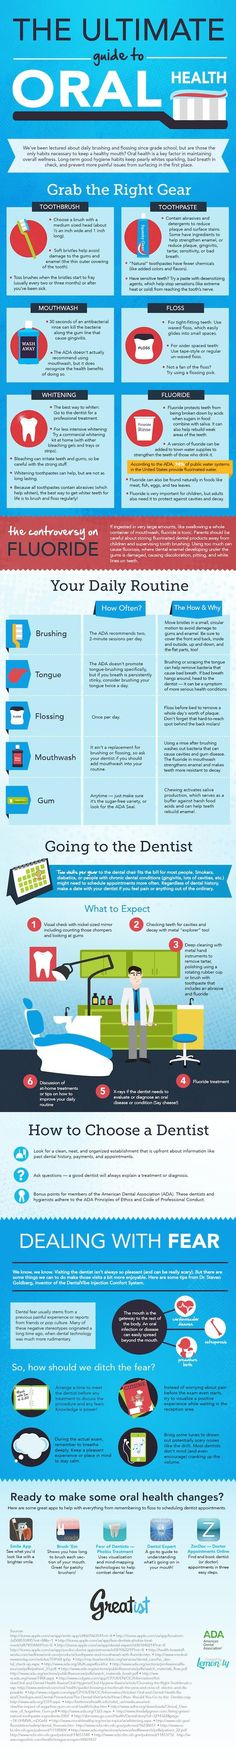 Here is everything you need to know about oral health in one (long) easy to read #infographic. #Dentistry #Teeth